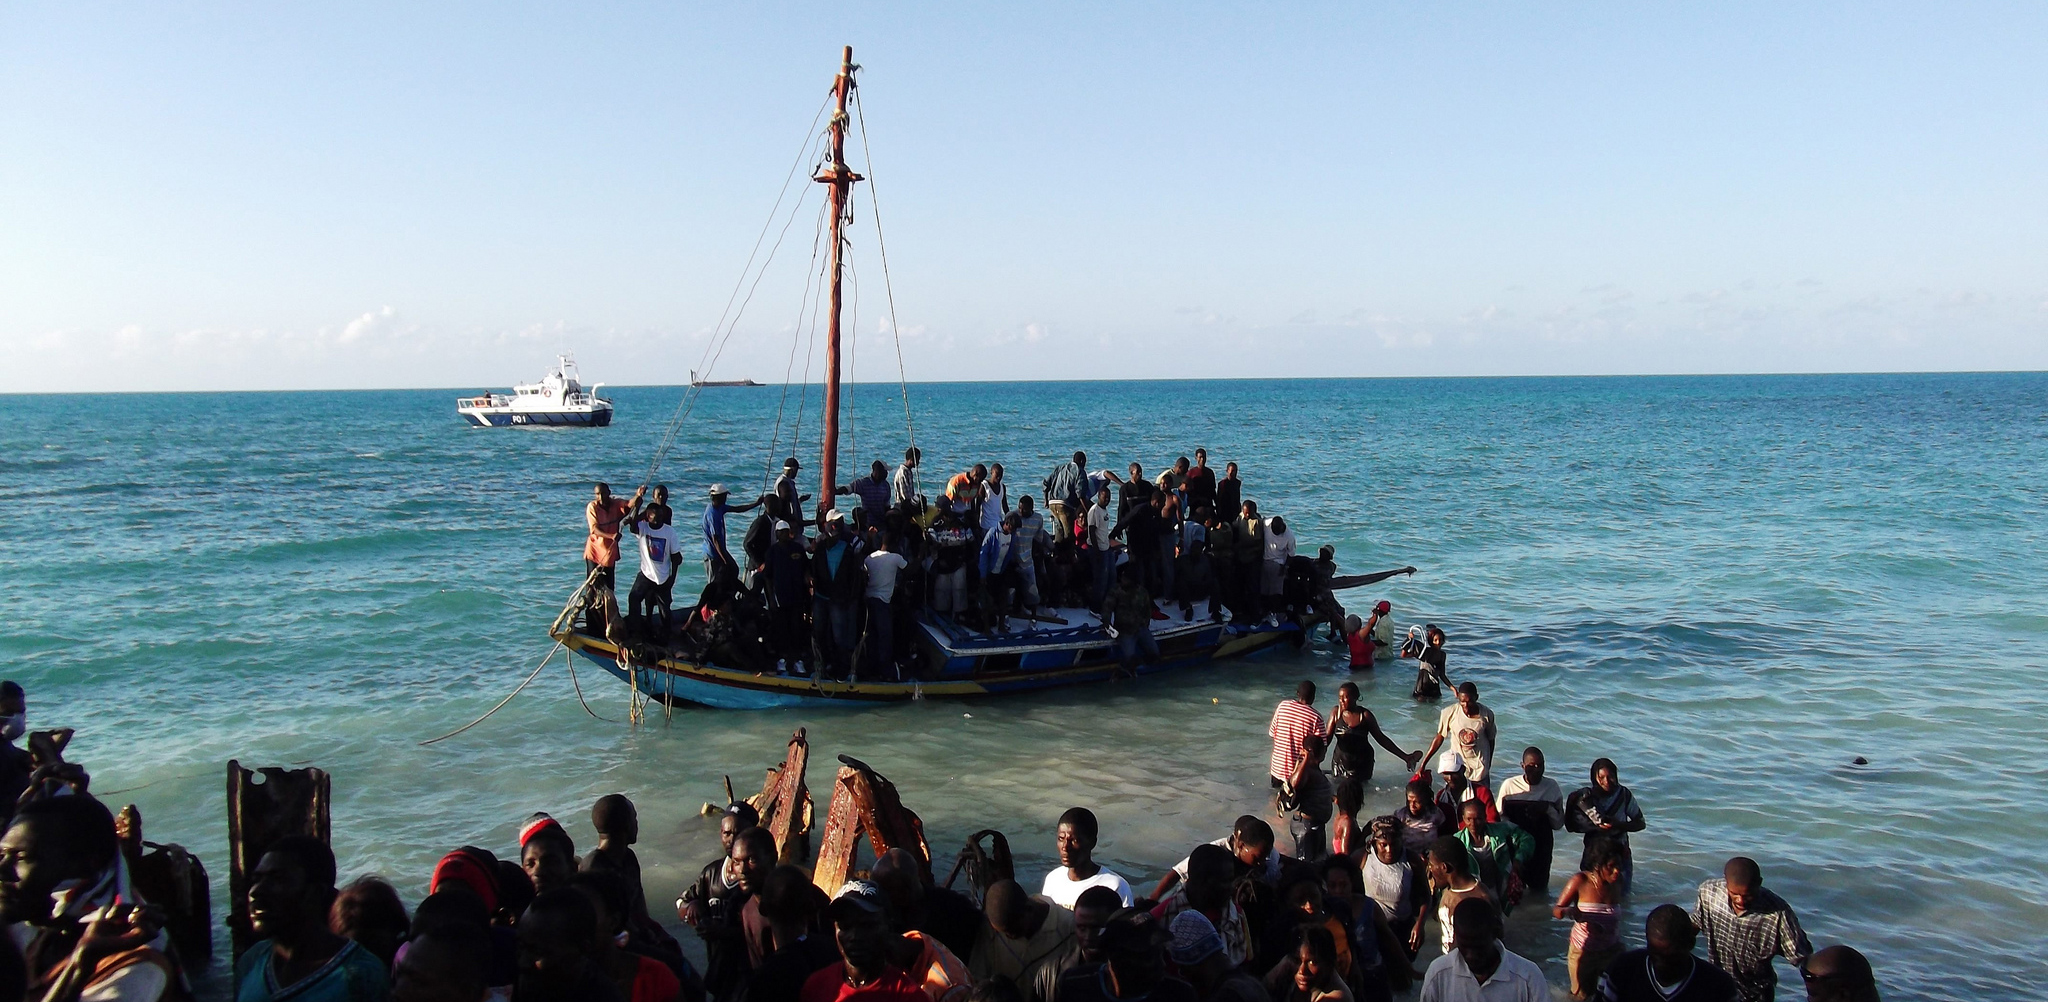 Refugees on a boat at sea